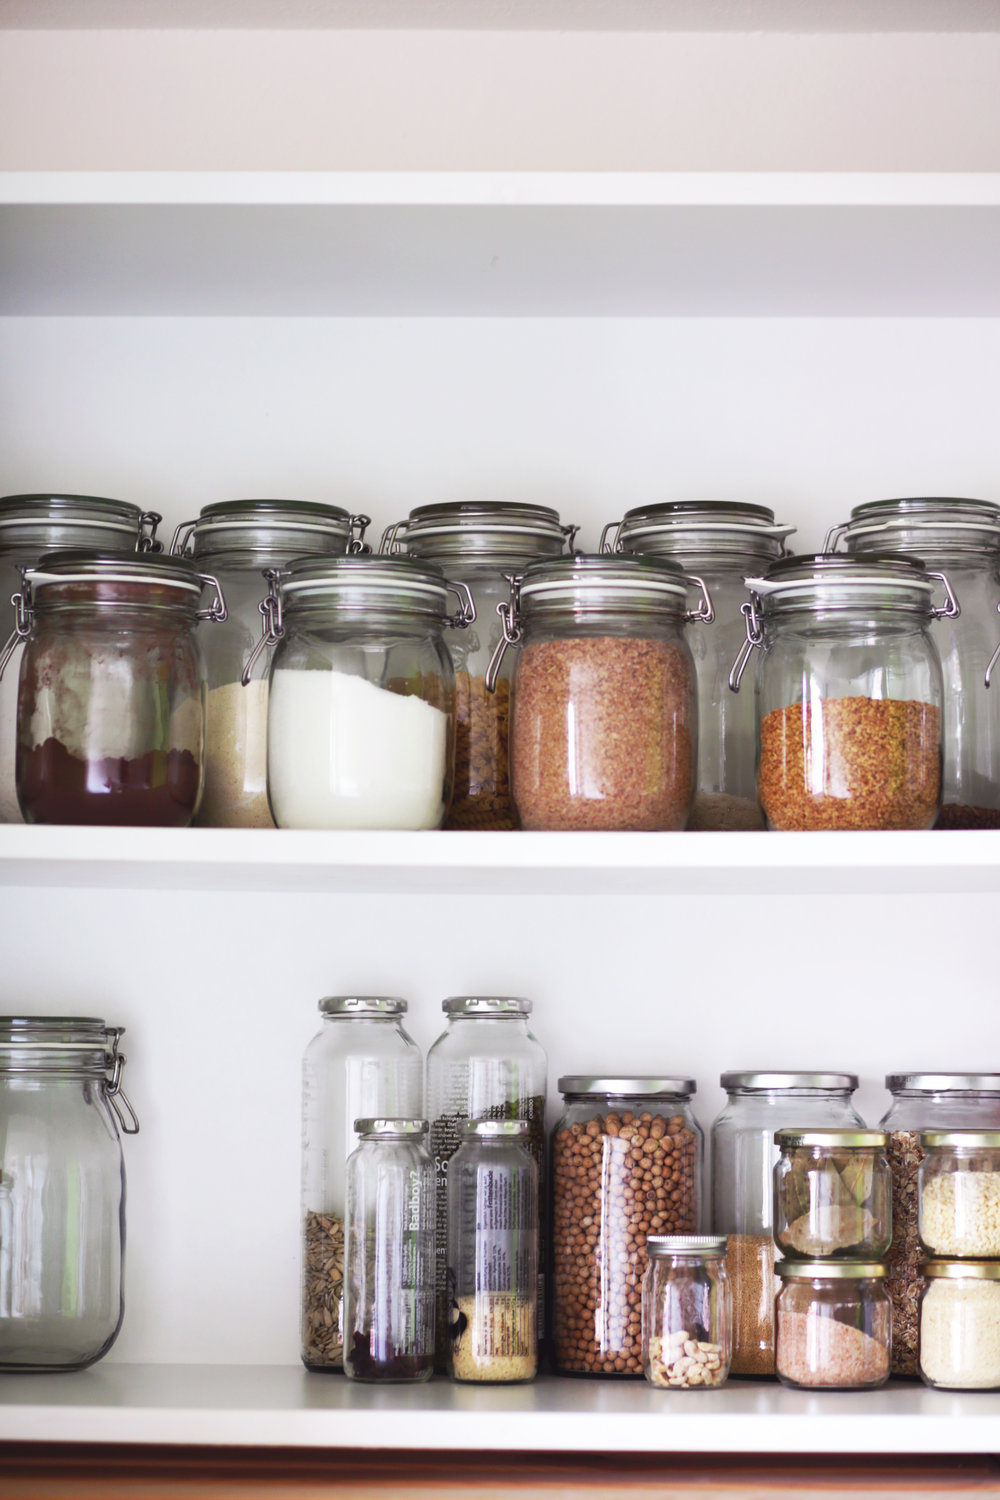 Give your pantry a reboot with nutritious nutrient rich clean foods  image: @lauramitulla